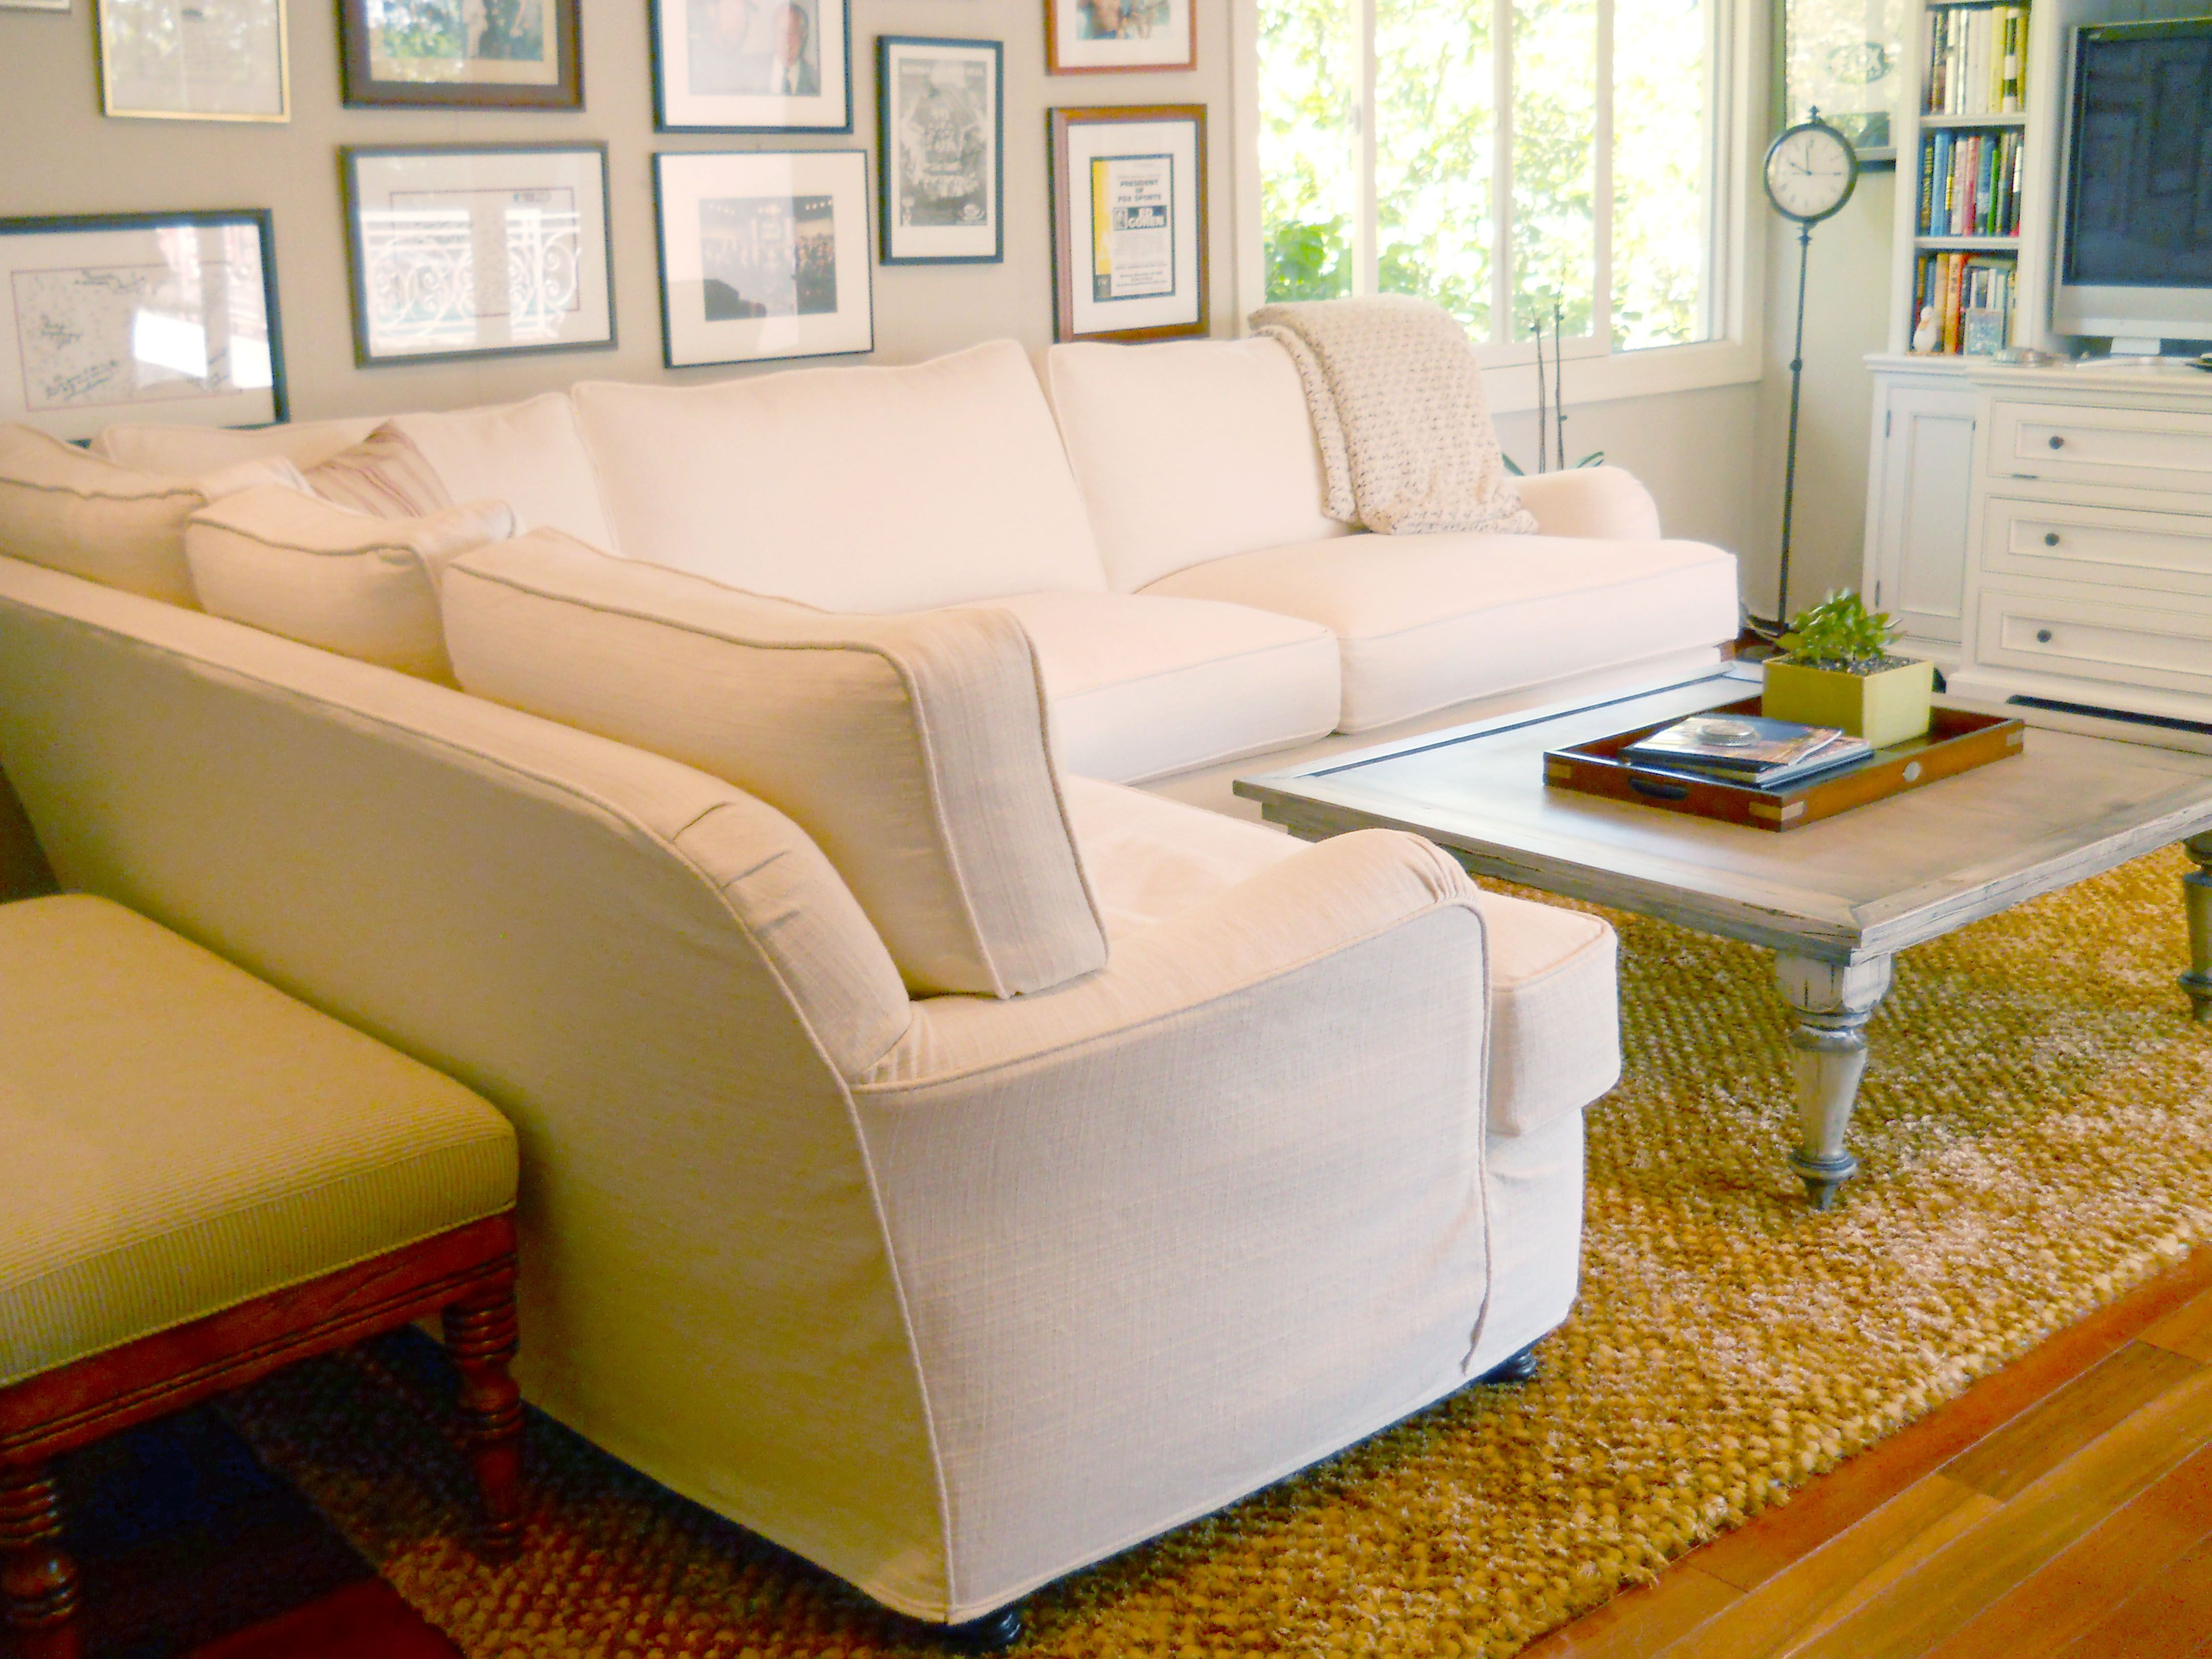 Quatrine Ivory Slipcovered Modern Milan Sectional And Distressed Danbury  Coffee Table